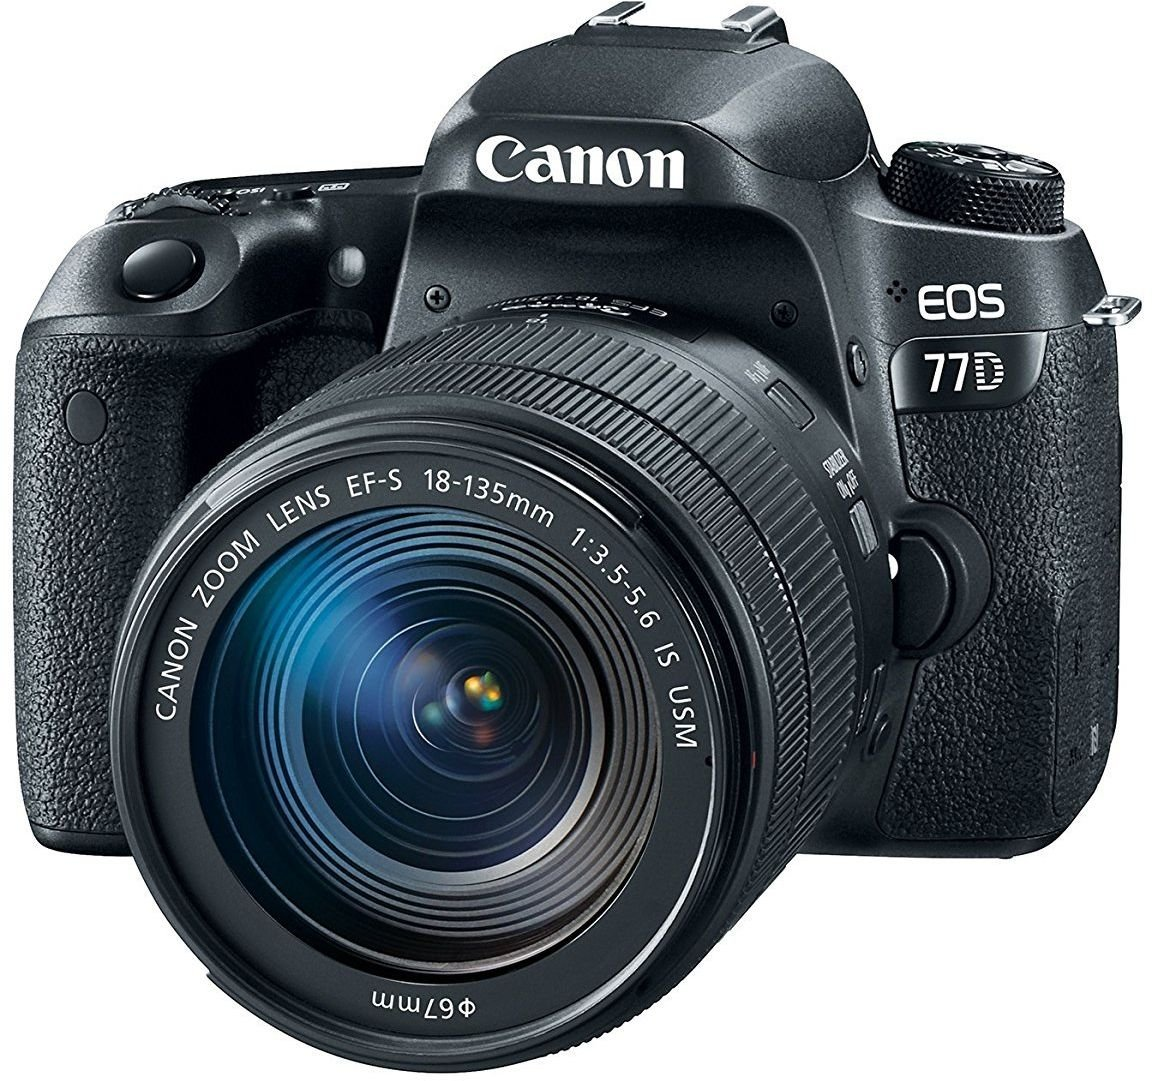 buy Canon 77D at lowest price, reviews, specification